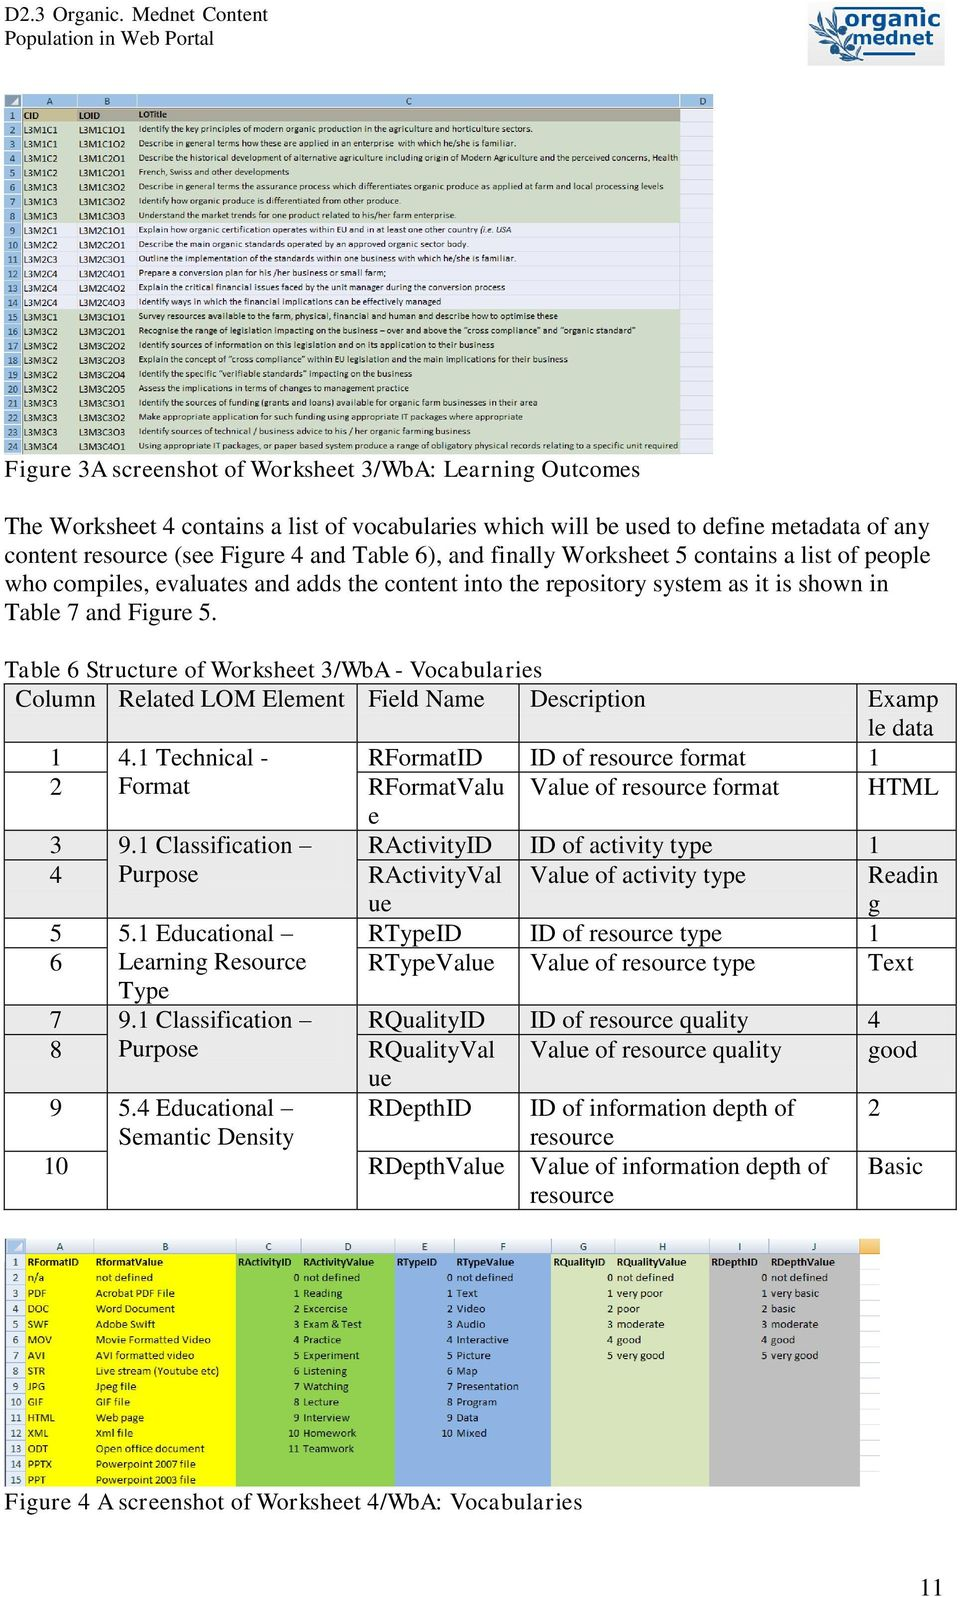 Table 6 Structure of Worksheet 3/WbA - Vocabularies Column Related LOM Element Field Name Description Examp le data 1 4.